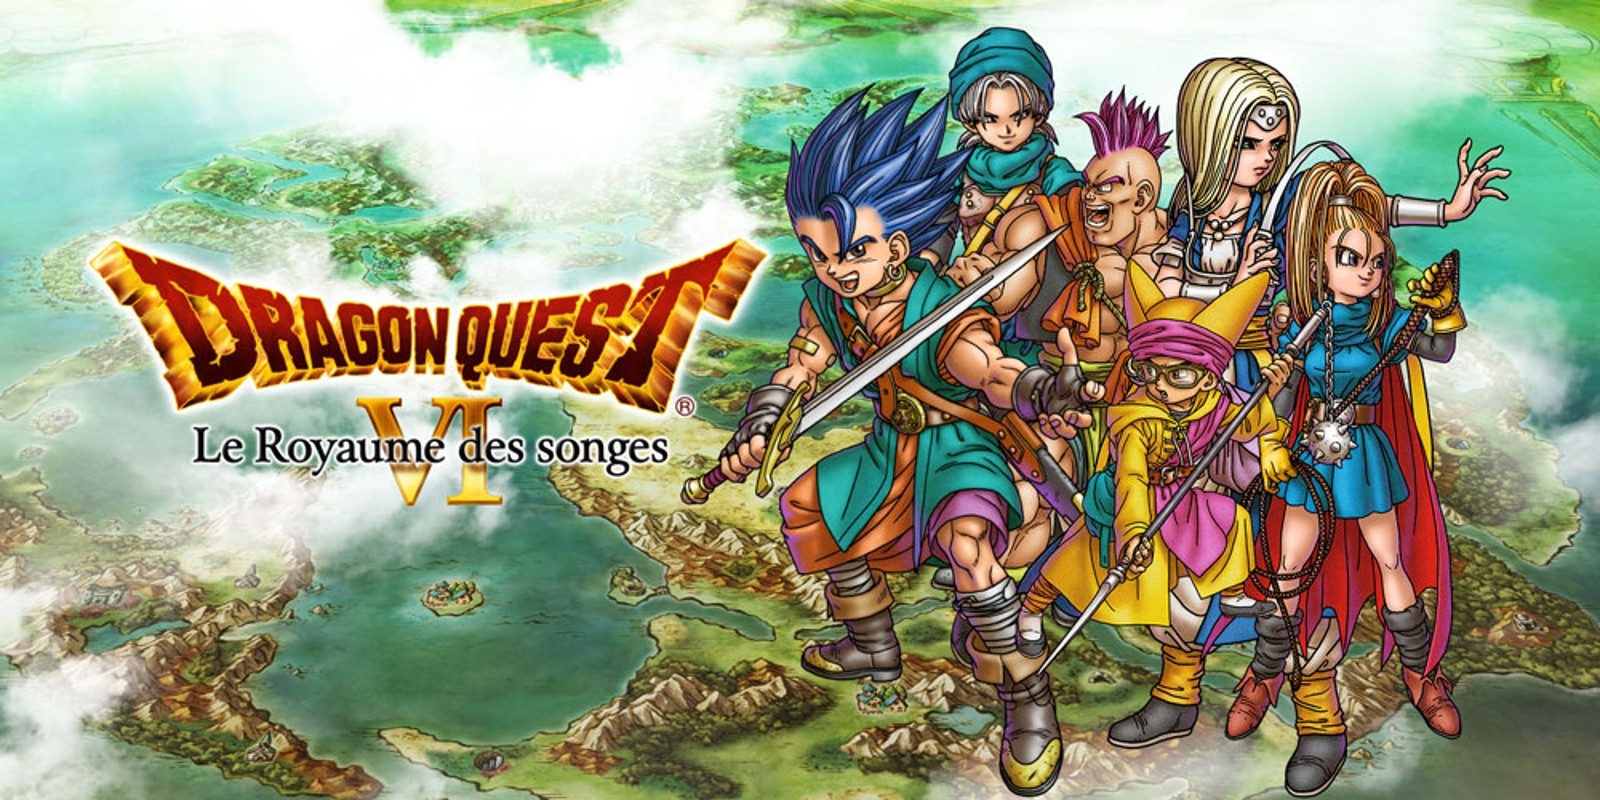 Dragon Quest Vi Fliegender Teppich Dragon Quest Vi Le Royaume Des Songes Nintendo Ds